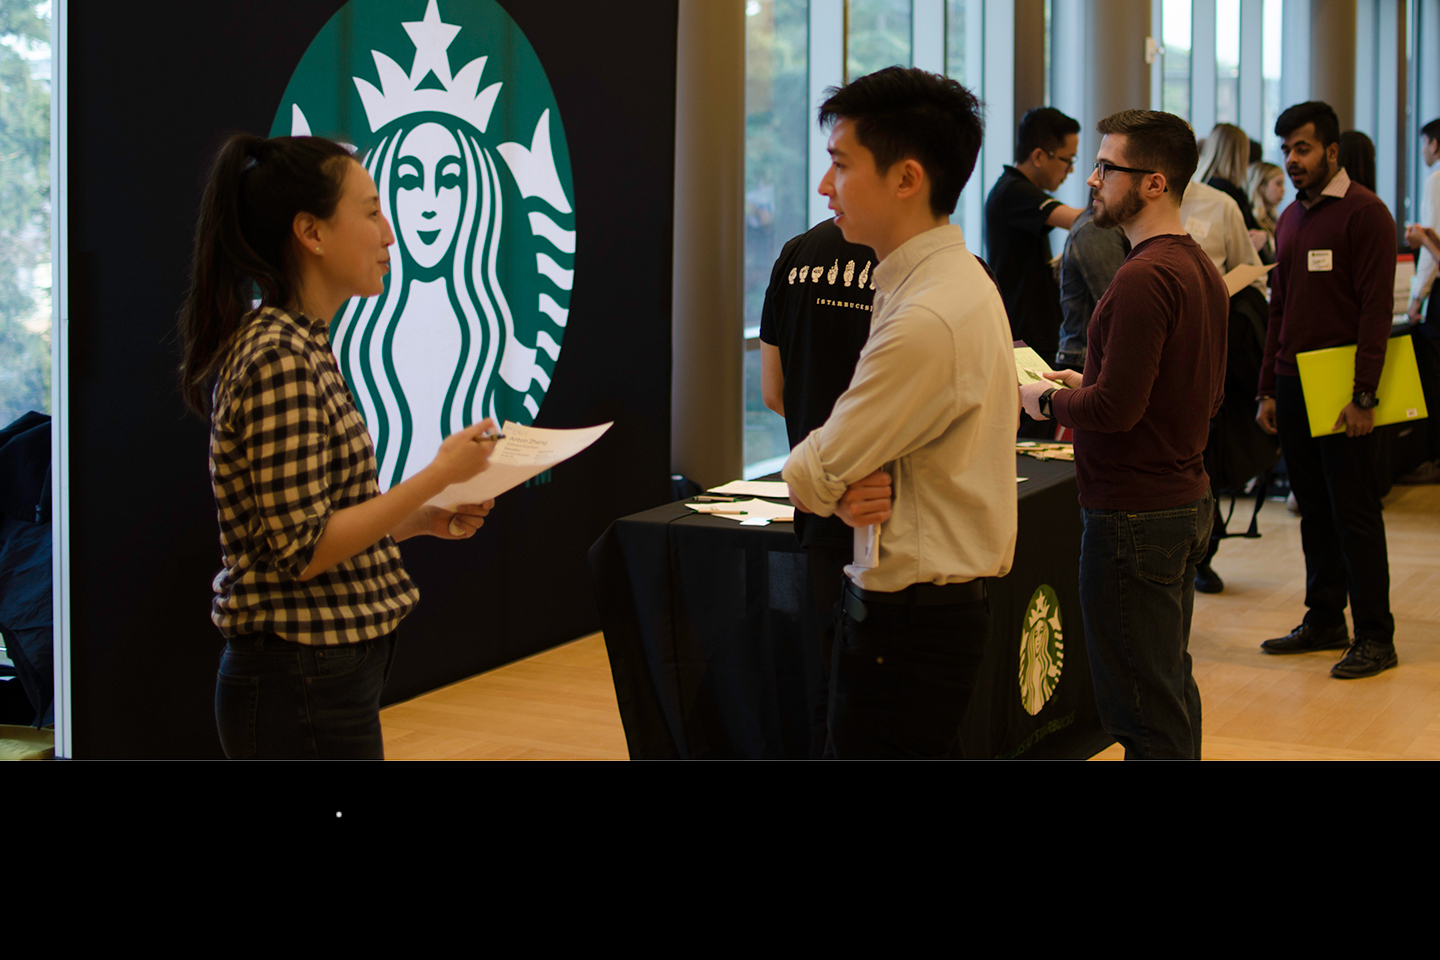 Starbucks representative and student at the iSchool Career Fair